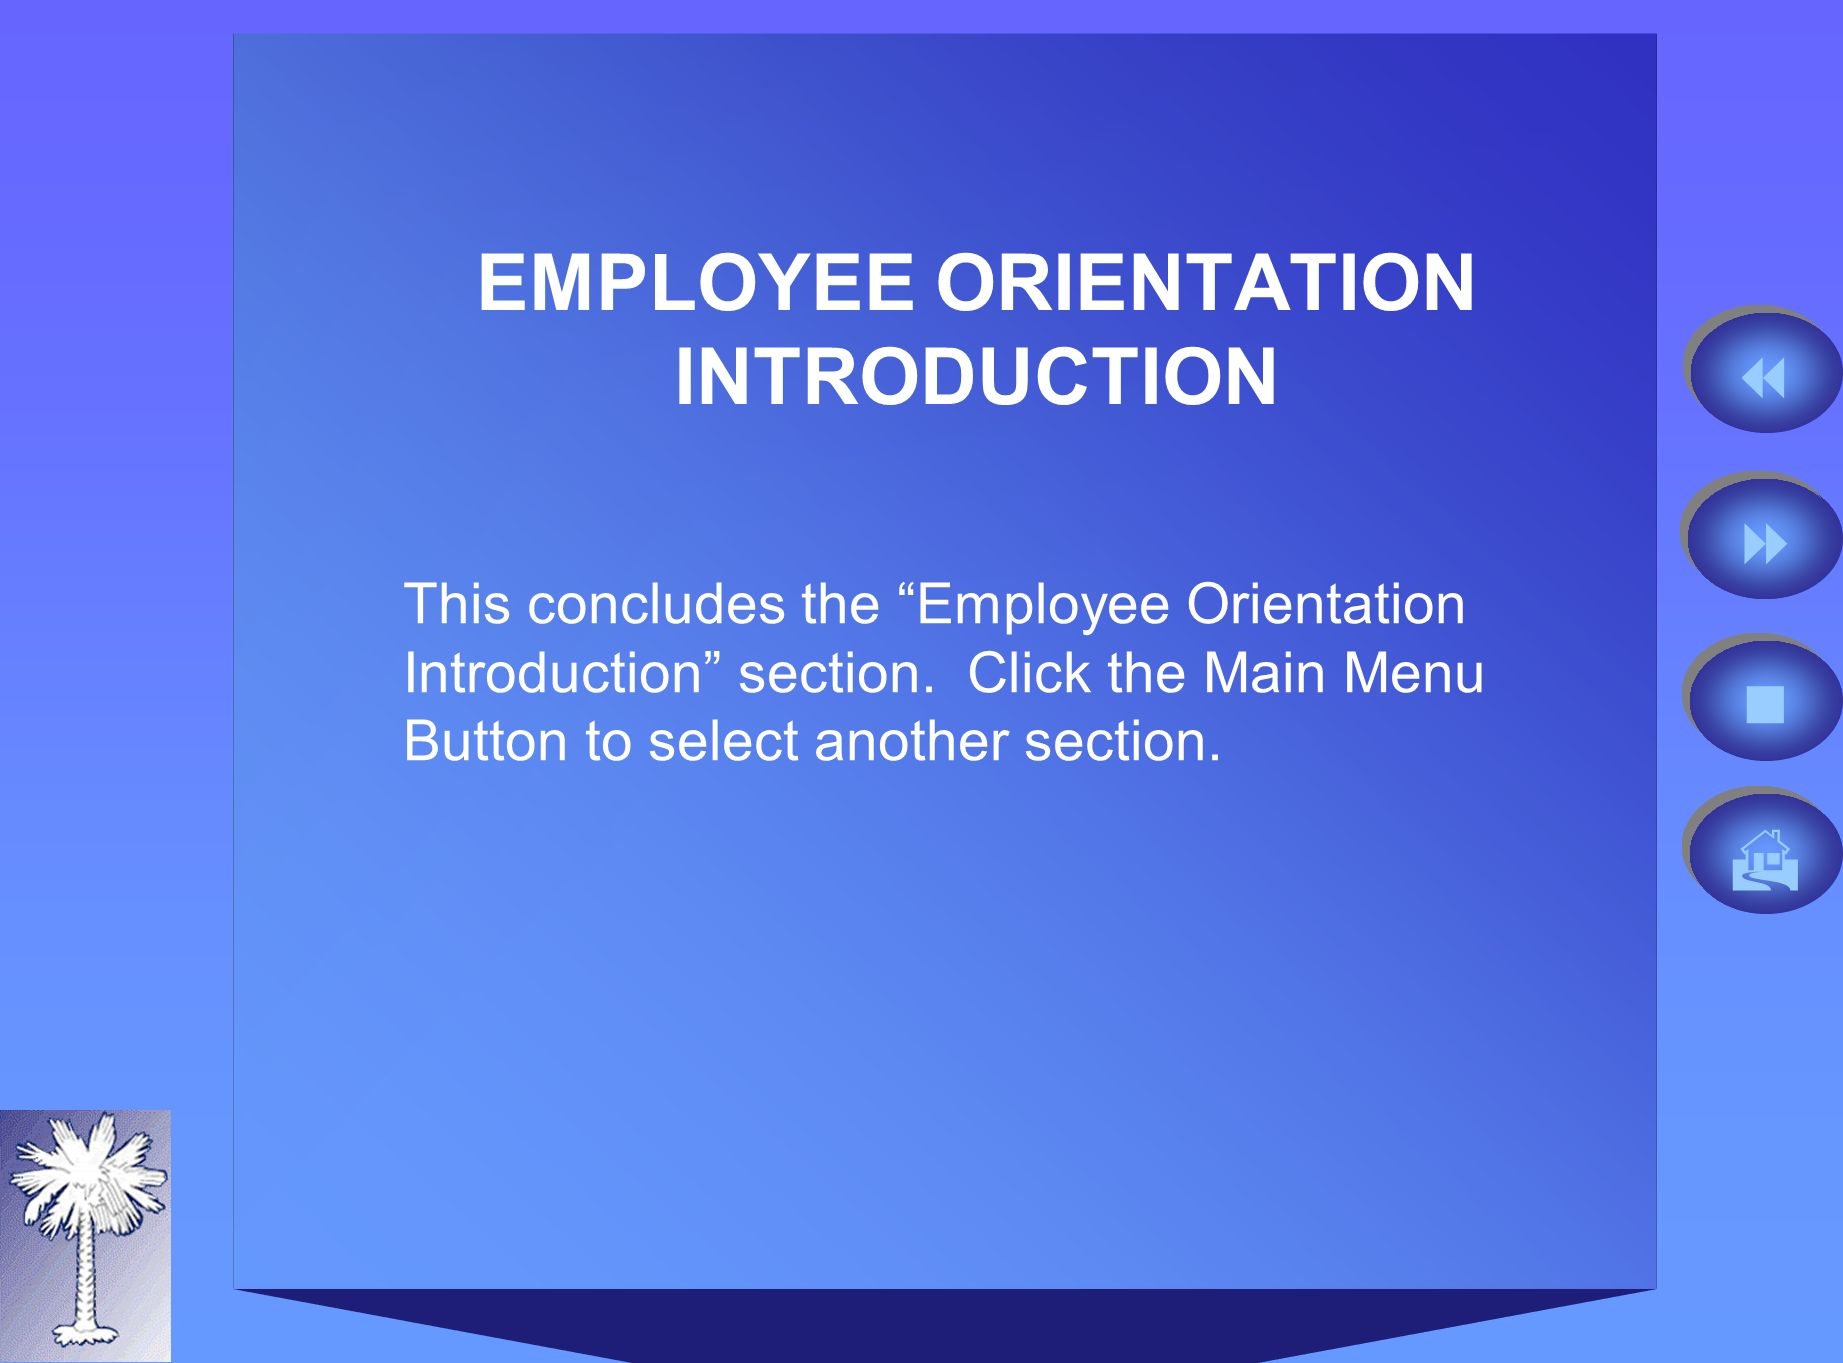 MAIN MENU Introduction to Employee Orientation Introduction to South Carolina State Government EmploymentIntroduction to South Carolina State Government Employment New Employee Toolkit Your Career Your Benefits Your Compensation Your Retirement Click on the section that you want or click the Back Button to return to the last slide.